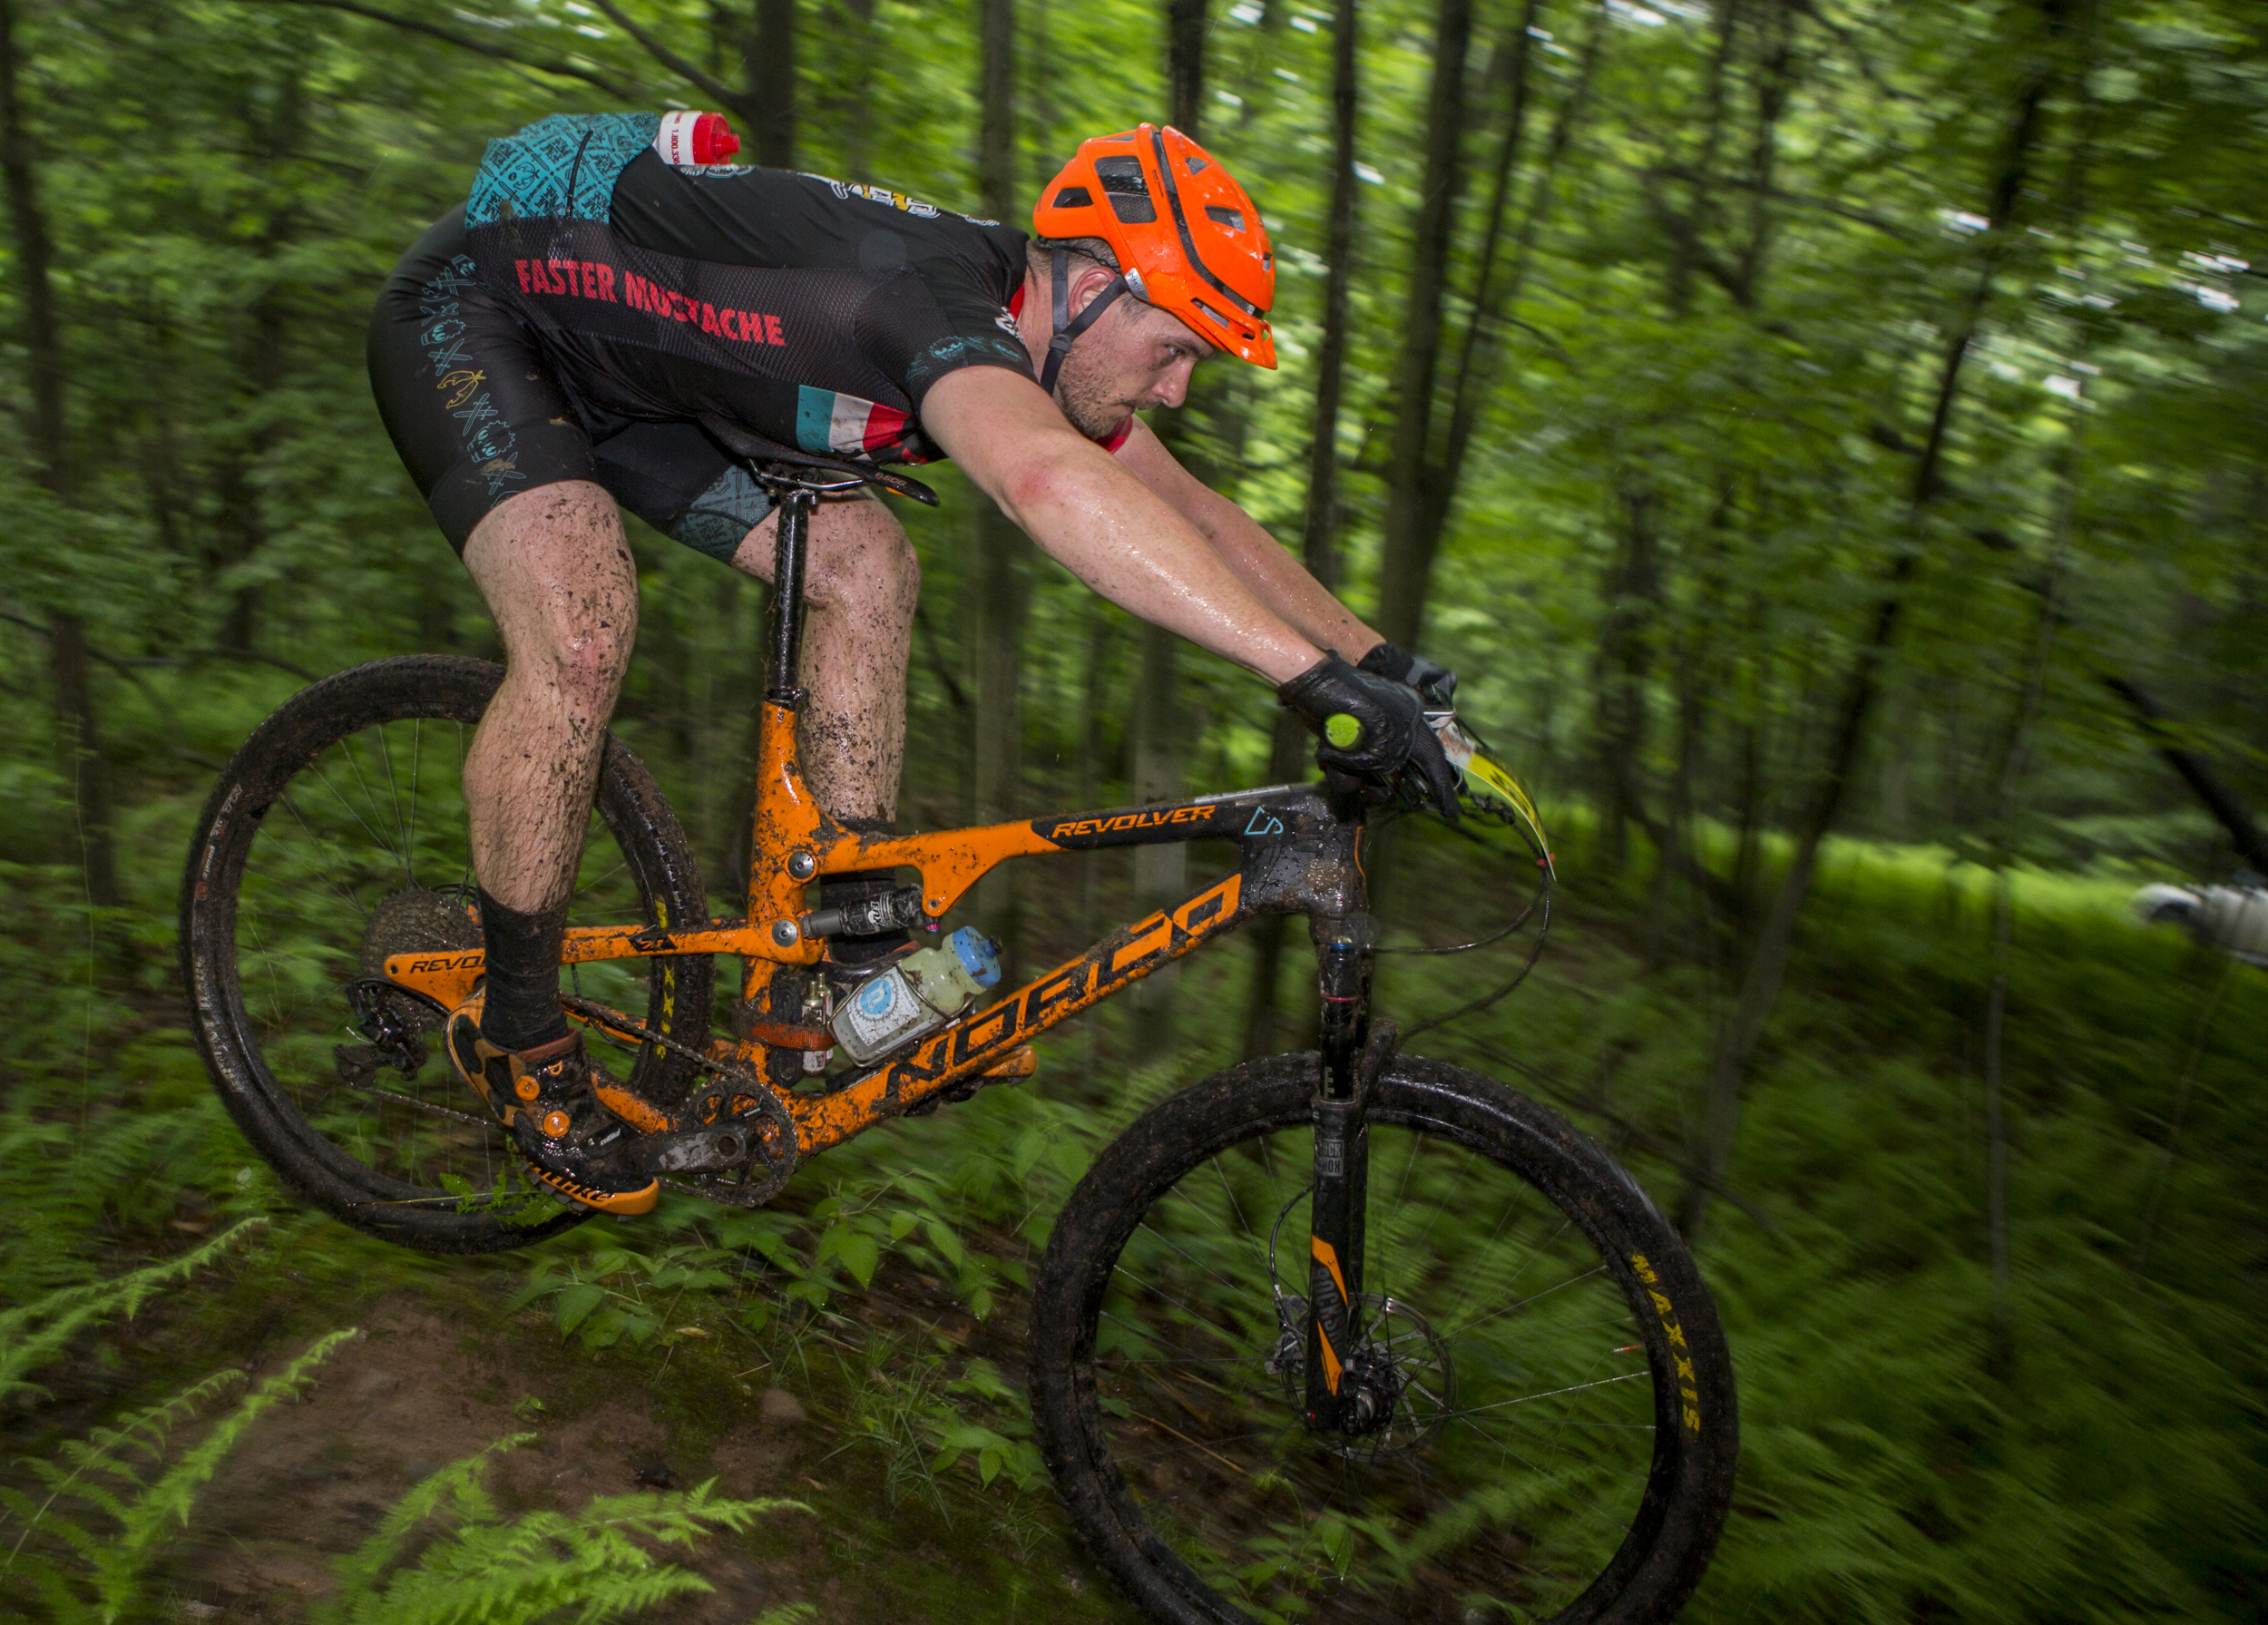 Aaron Chamberlain catches some air on a small dirt jump in the third enduro section in the final stage of the Tran-Sylvania Epic Mountain Bike Ride on Friday, June 3, 2016.